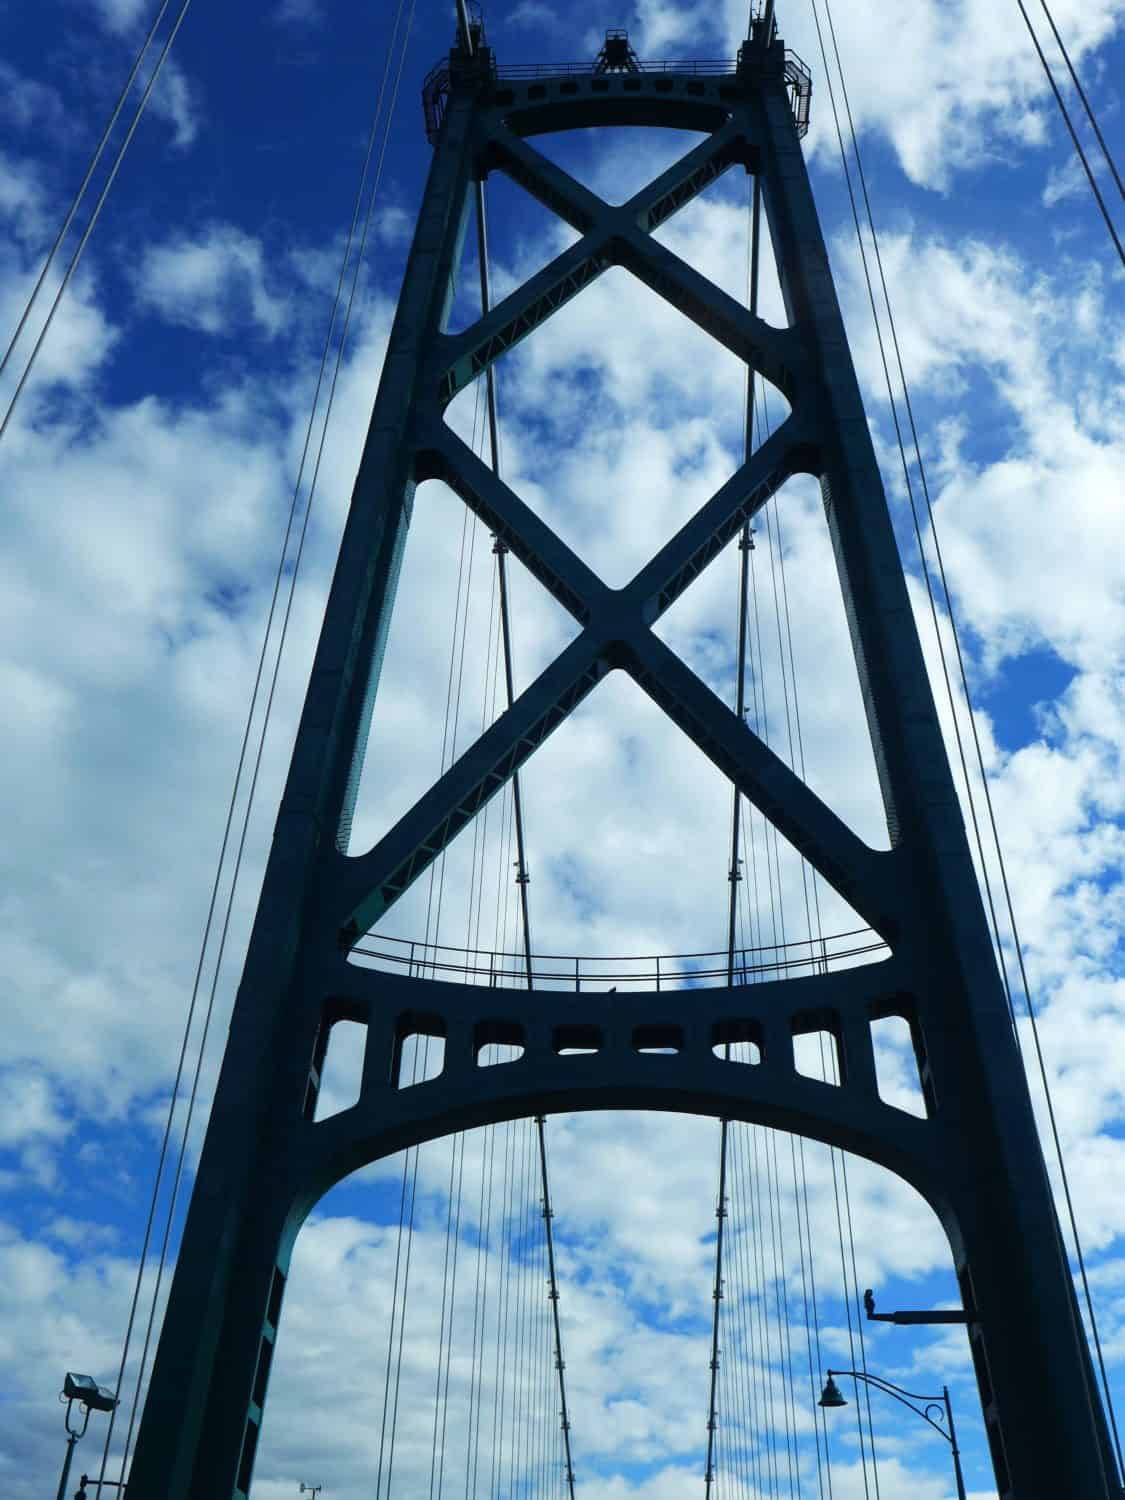 Driving across the Lion's Gate Bridge on a gorgeous day